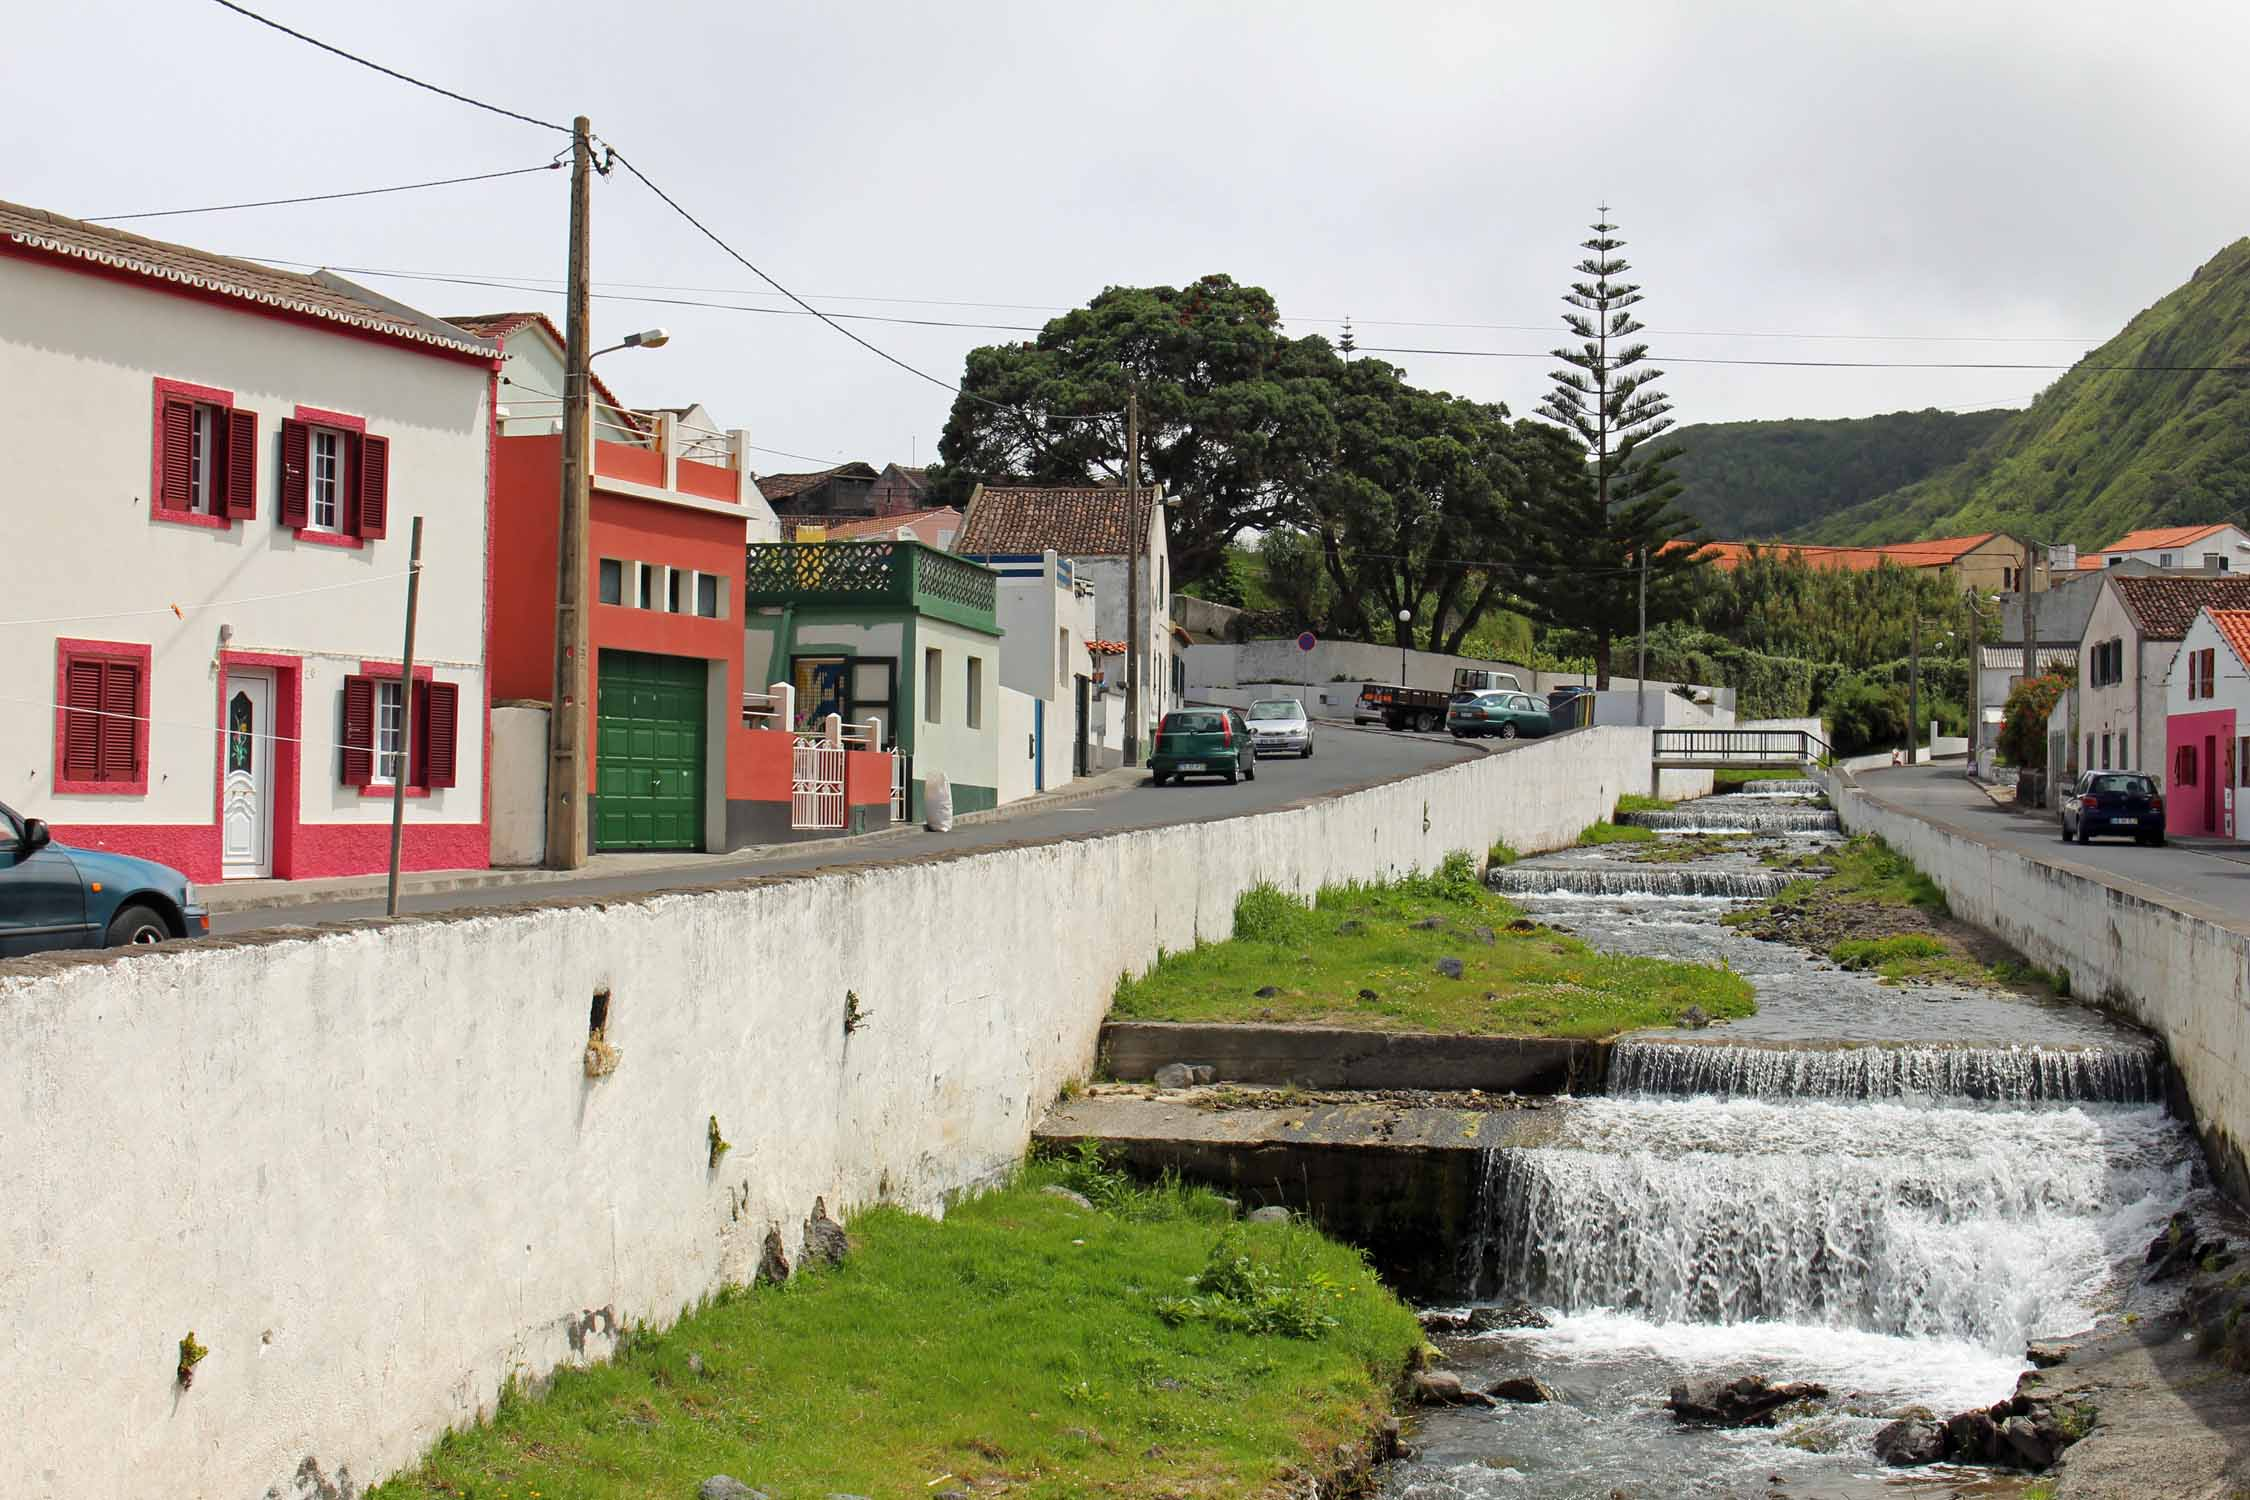 A river in the village of Mosteiros, São Miguel island, Azores